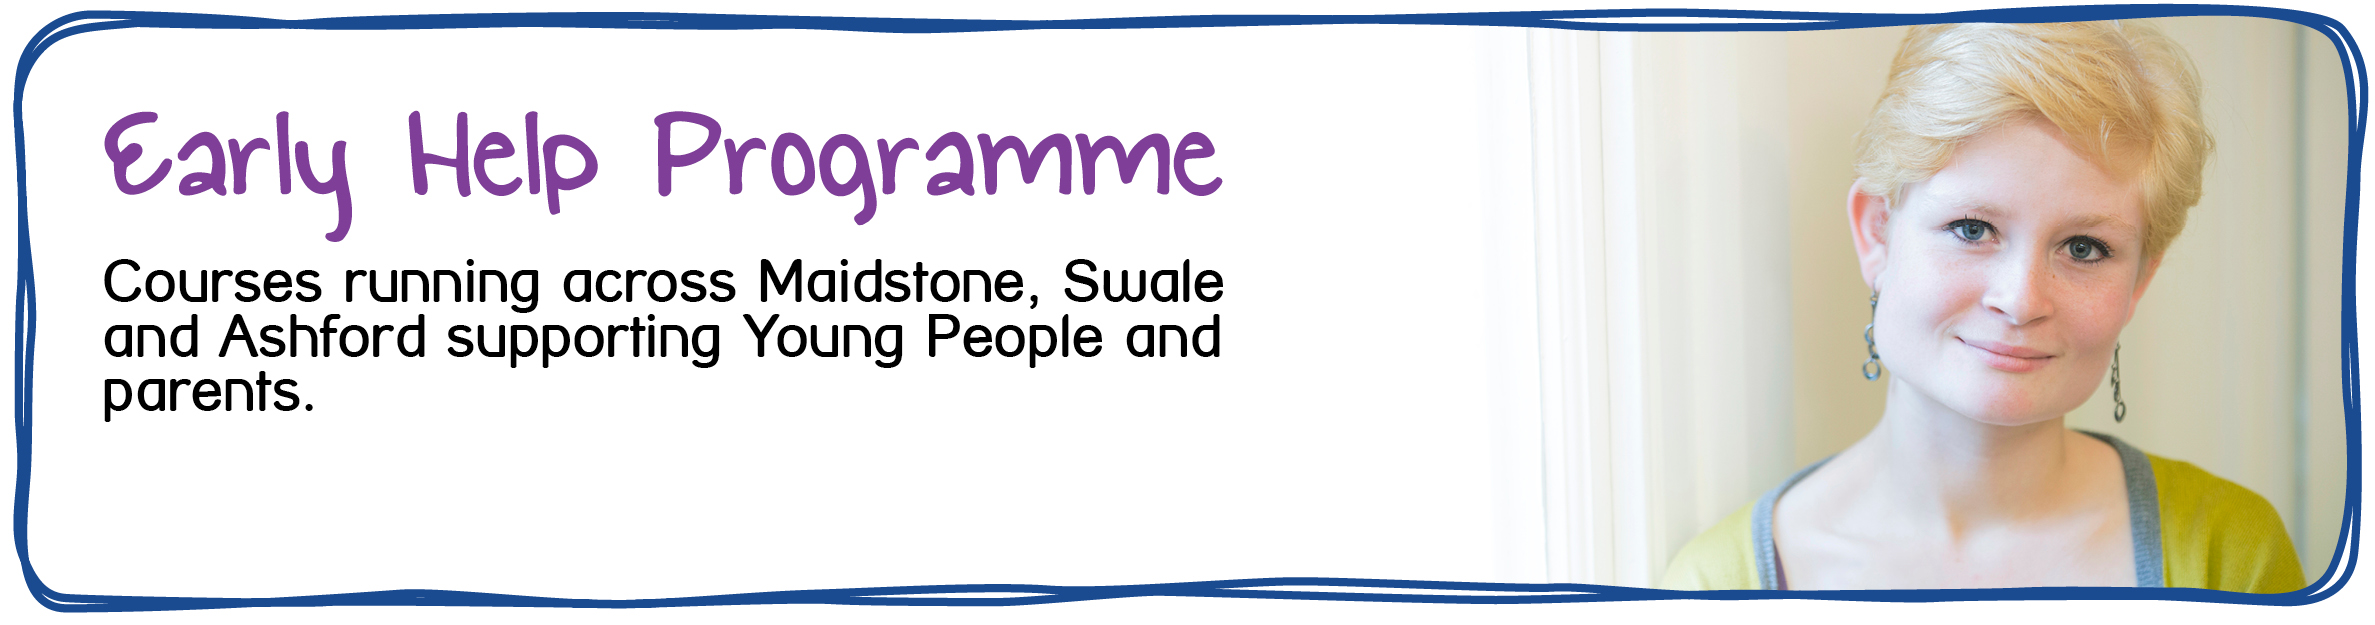 Early Help Programme in Maidstone, Swale and Ashford.